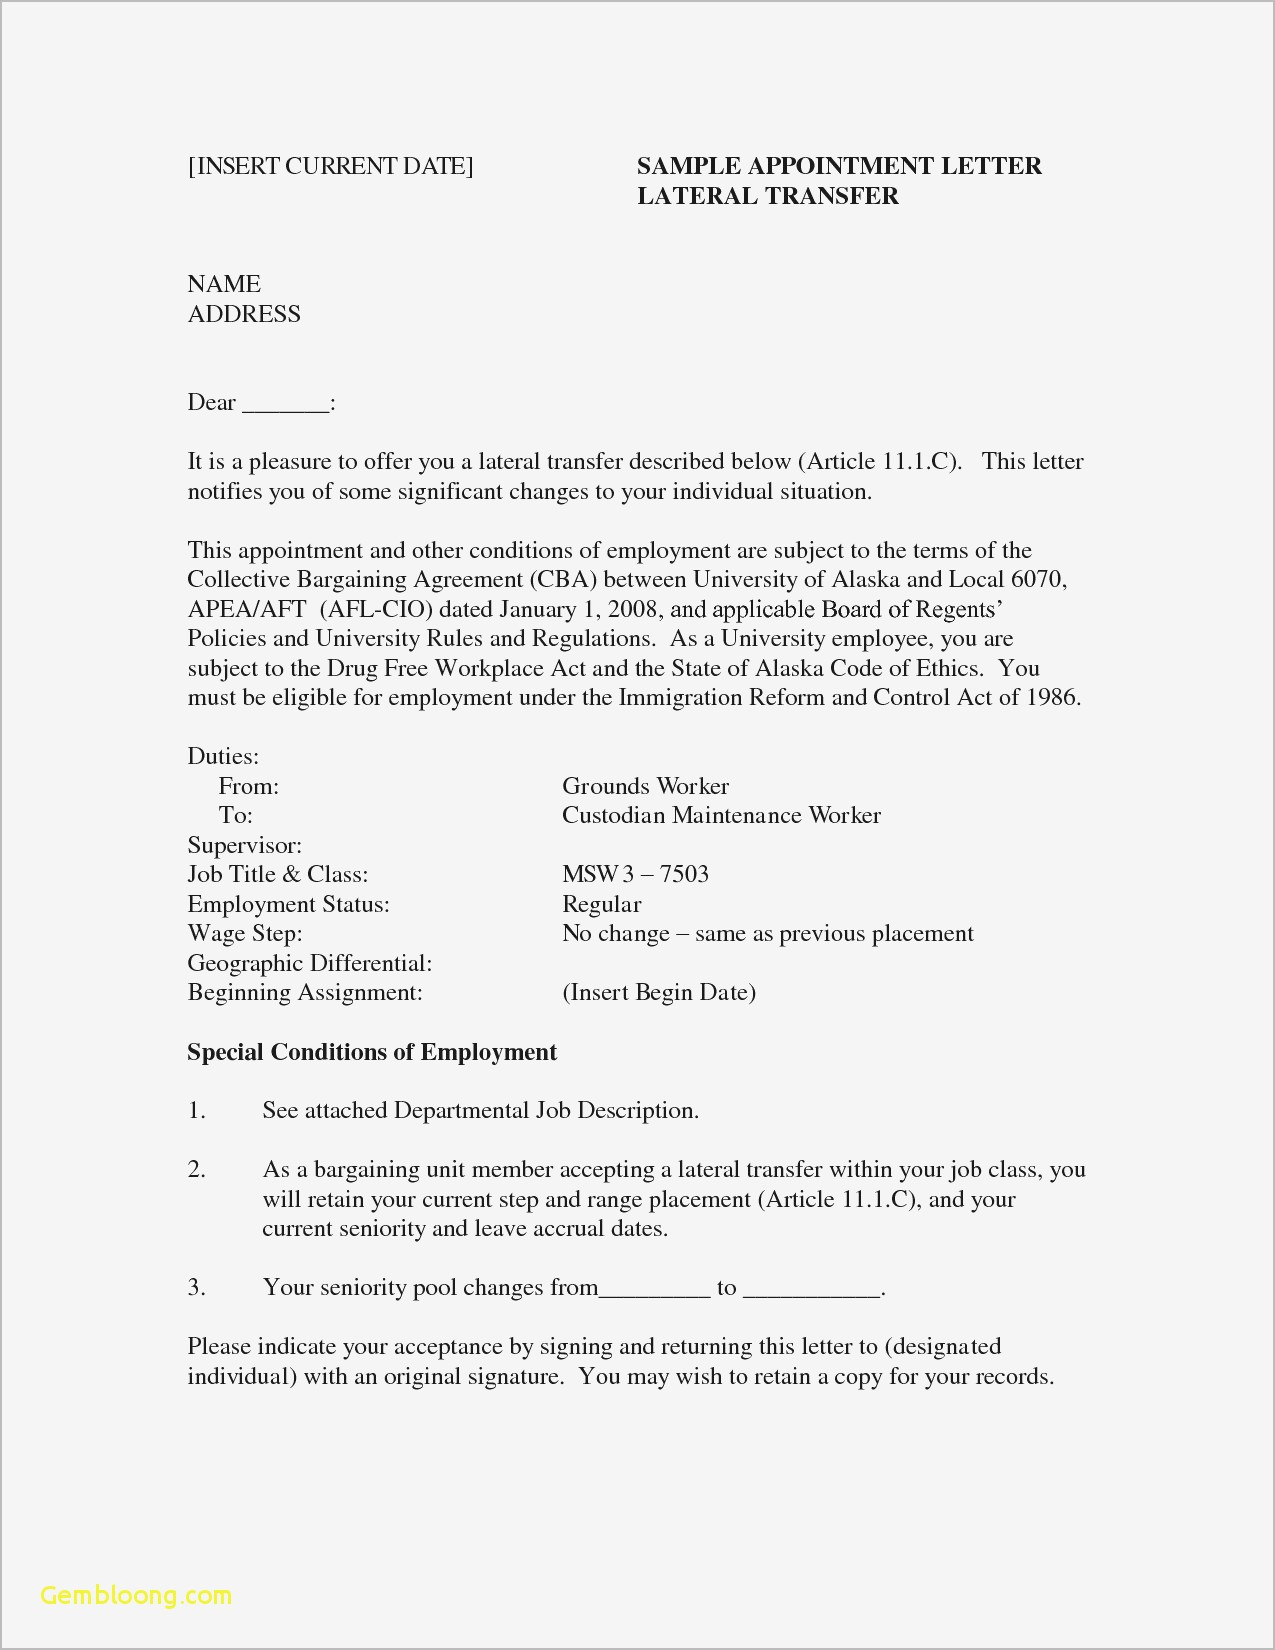 Cover Letter Template Pdf Free - Cover Letters Templates Pdf format